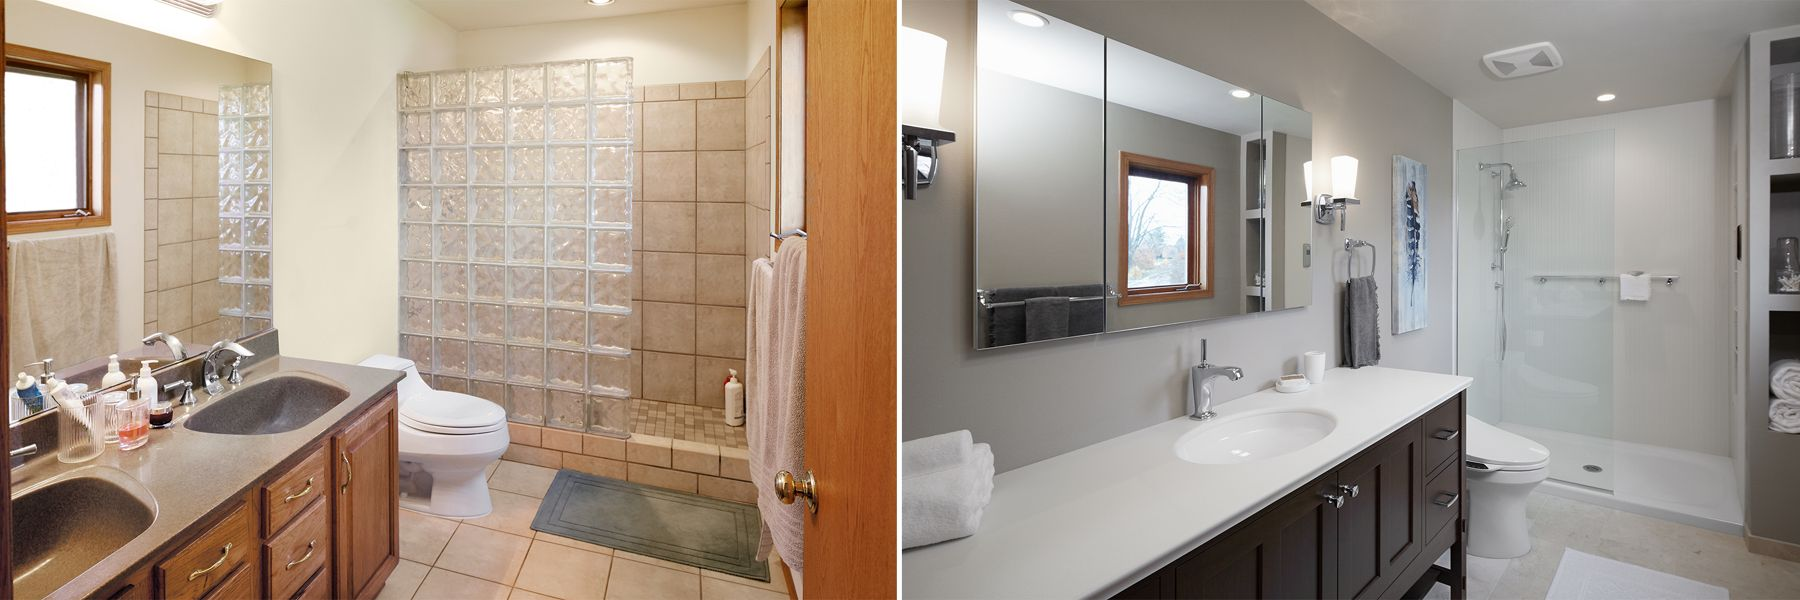 Charmant Your Ideal Bathroom Done Right